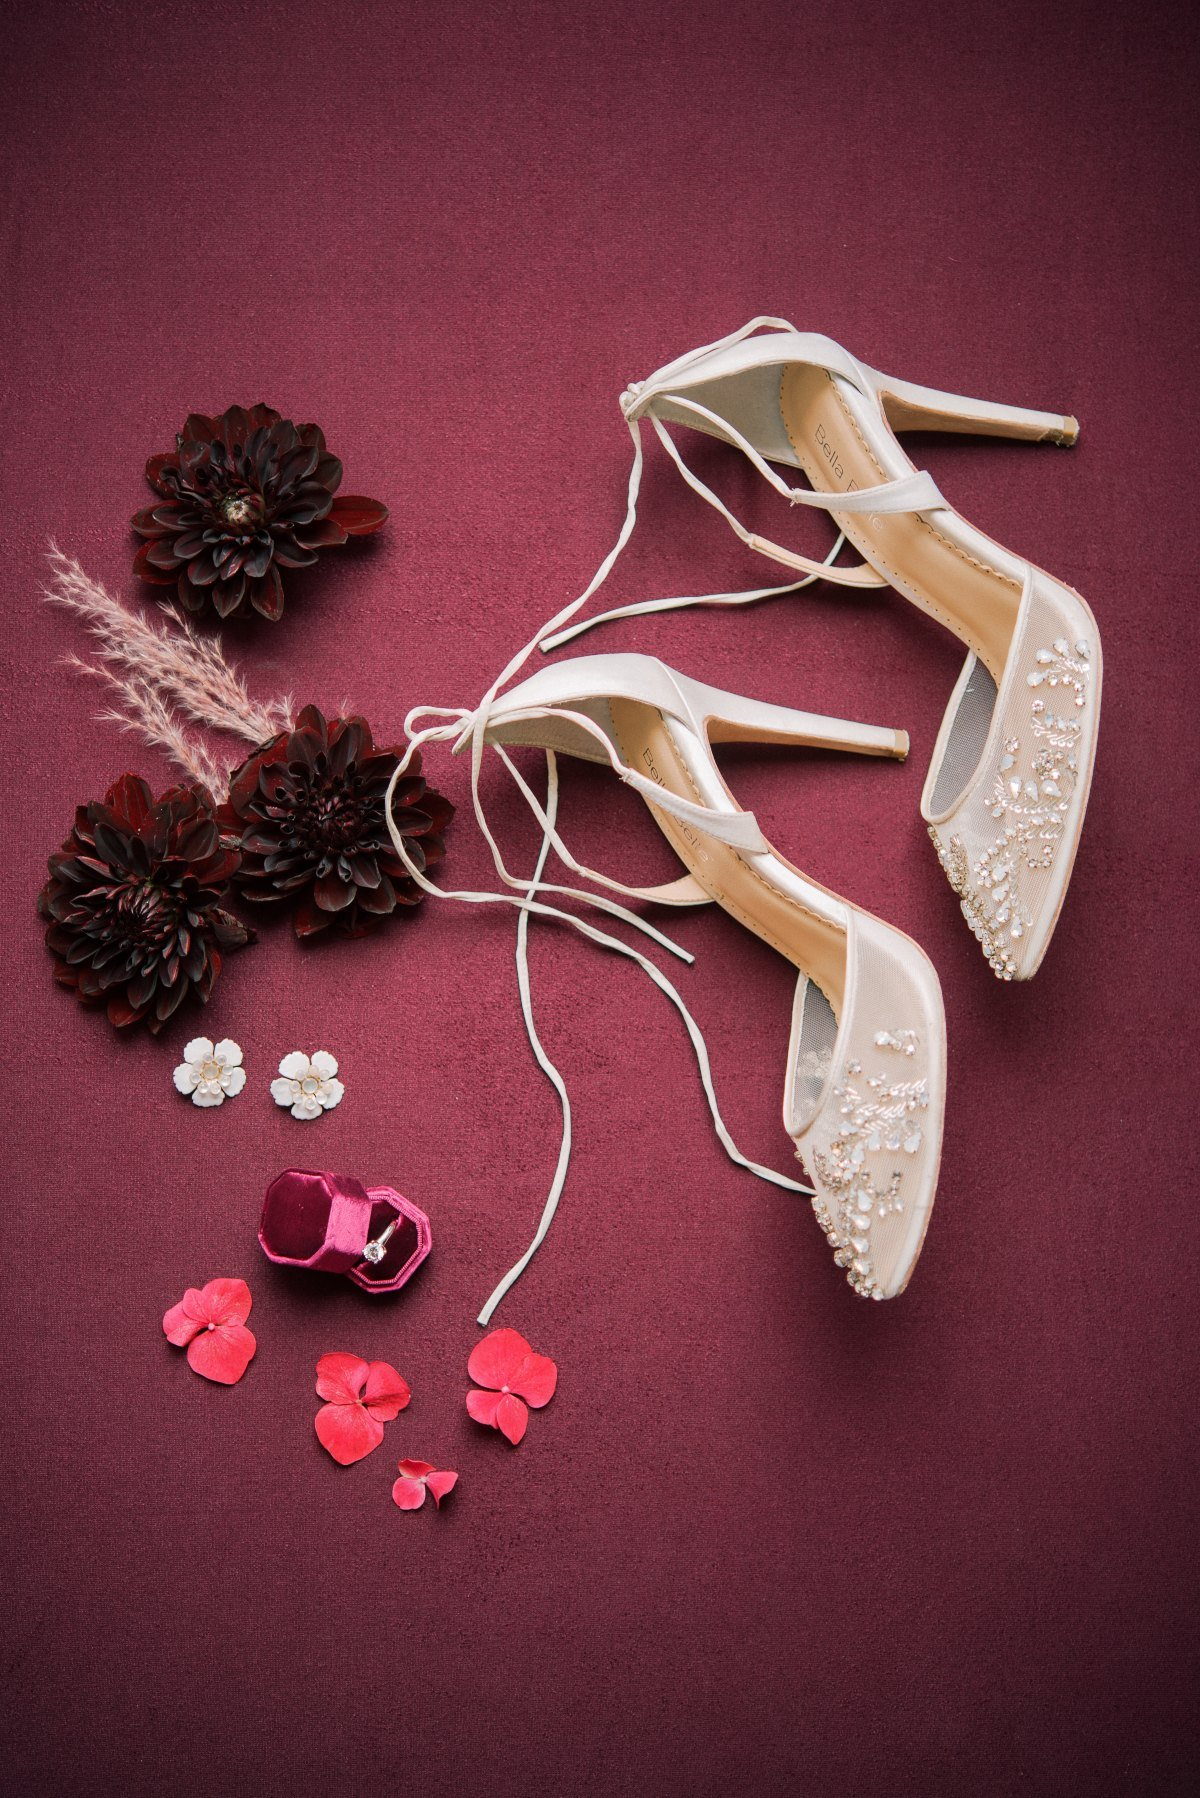 bella belle wedding shoes for a wedding flat lay shot by les anagnou